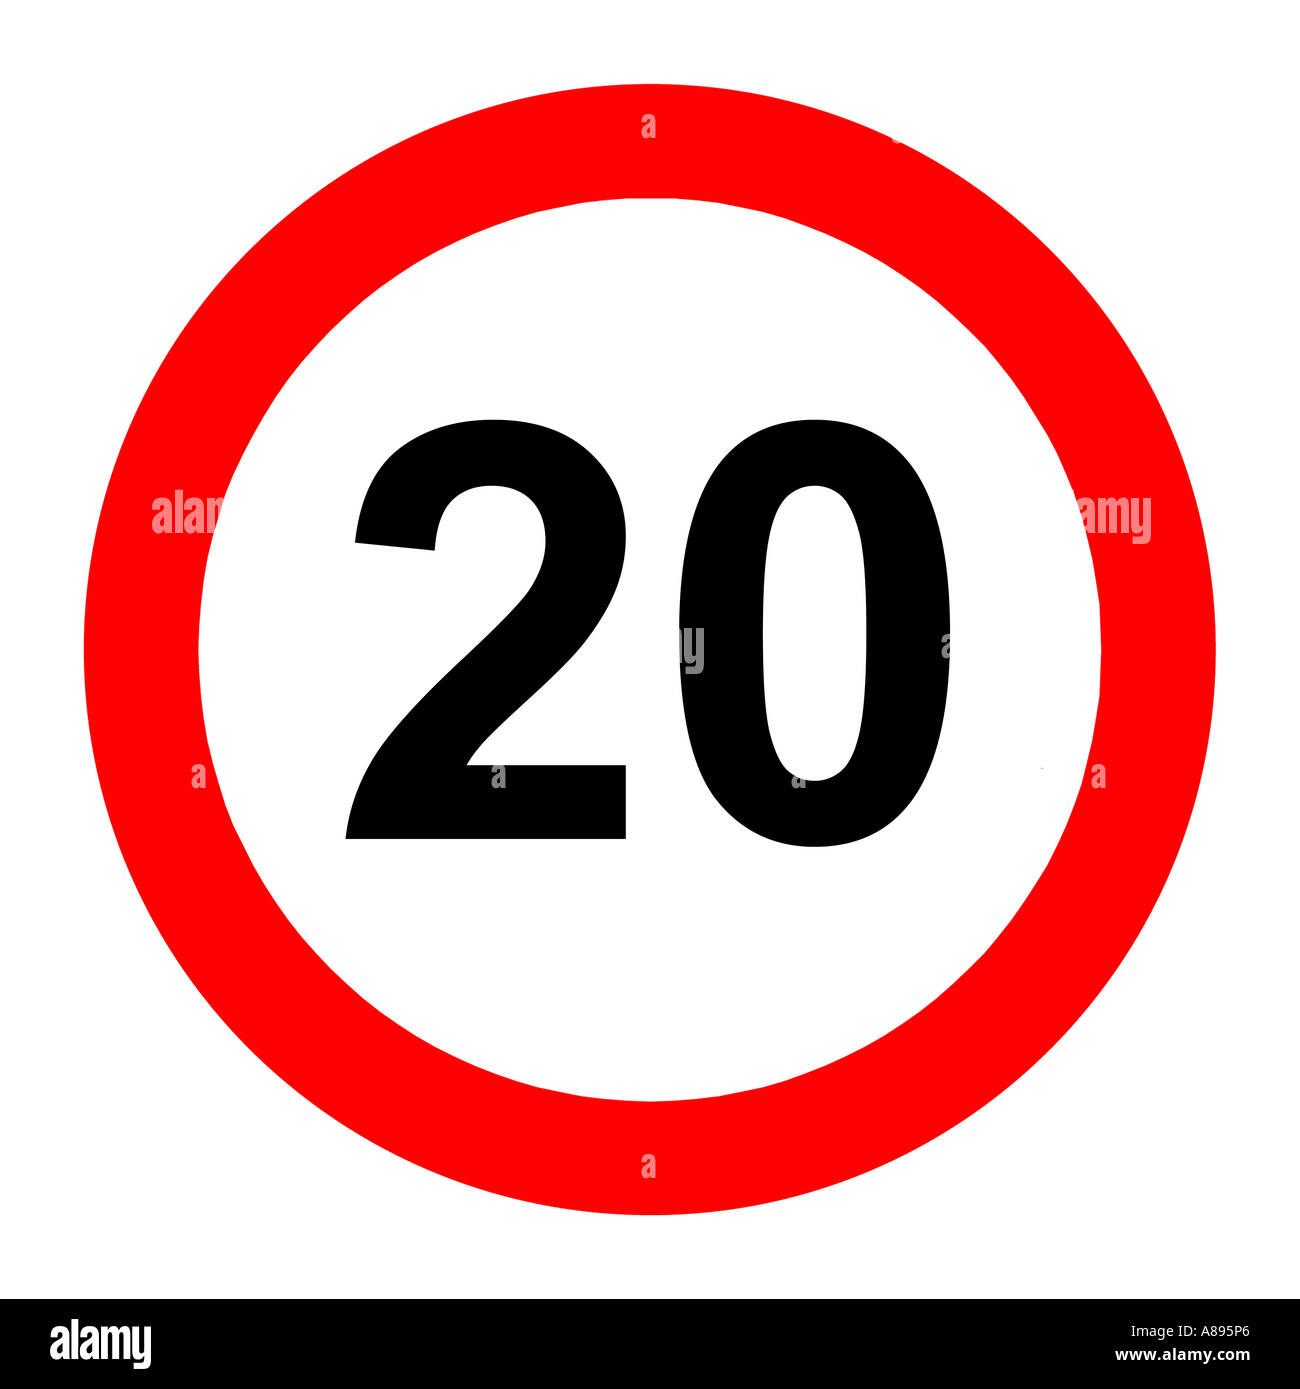 Twenty (20) miles per hour speed limit road sign on white ...